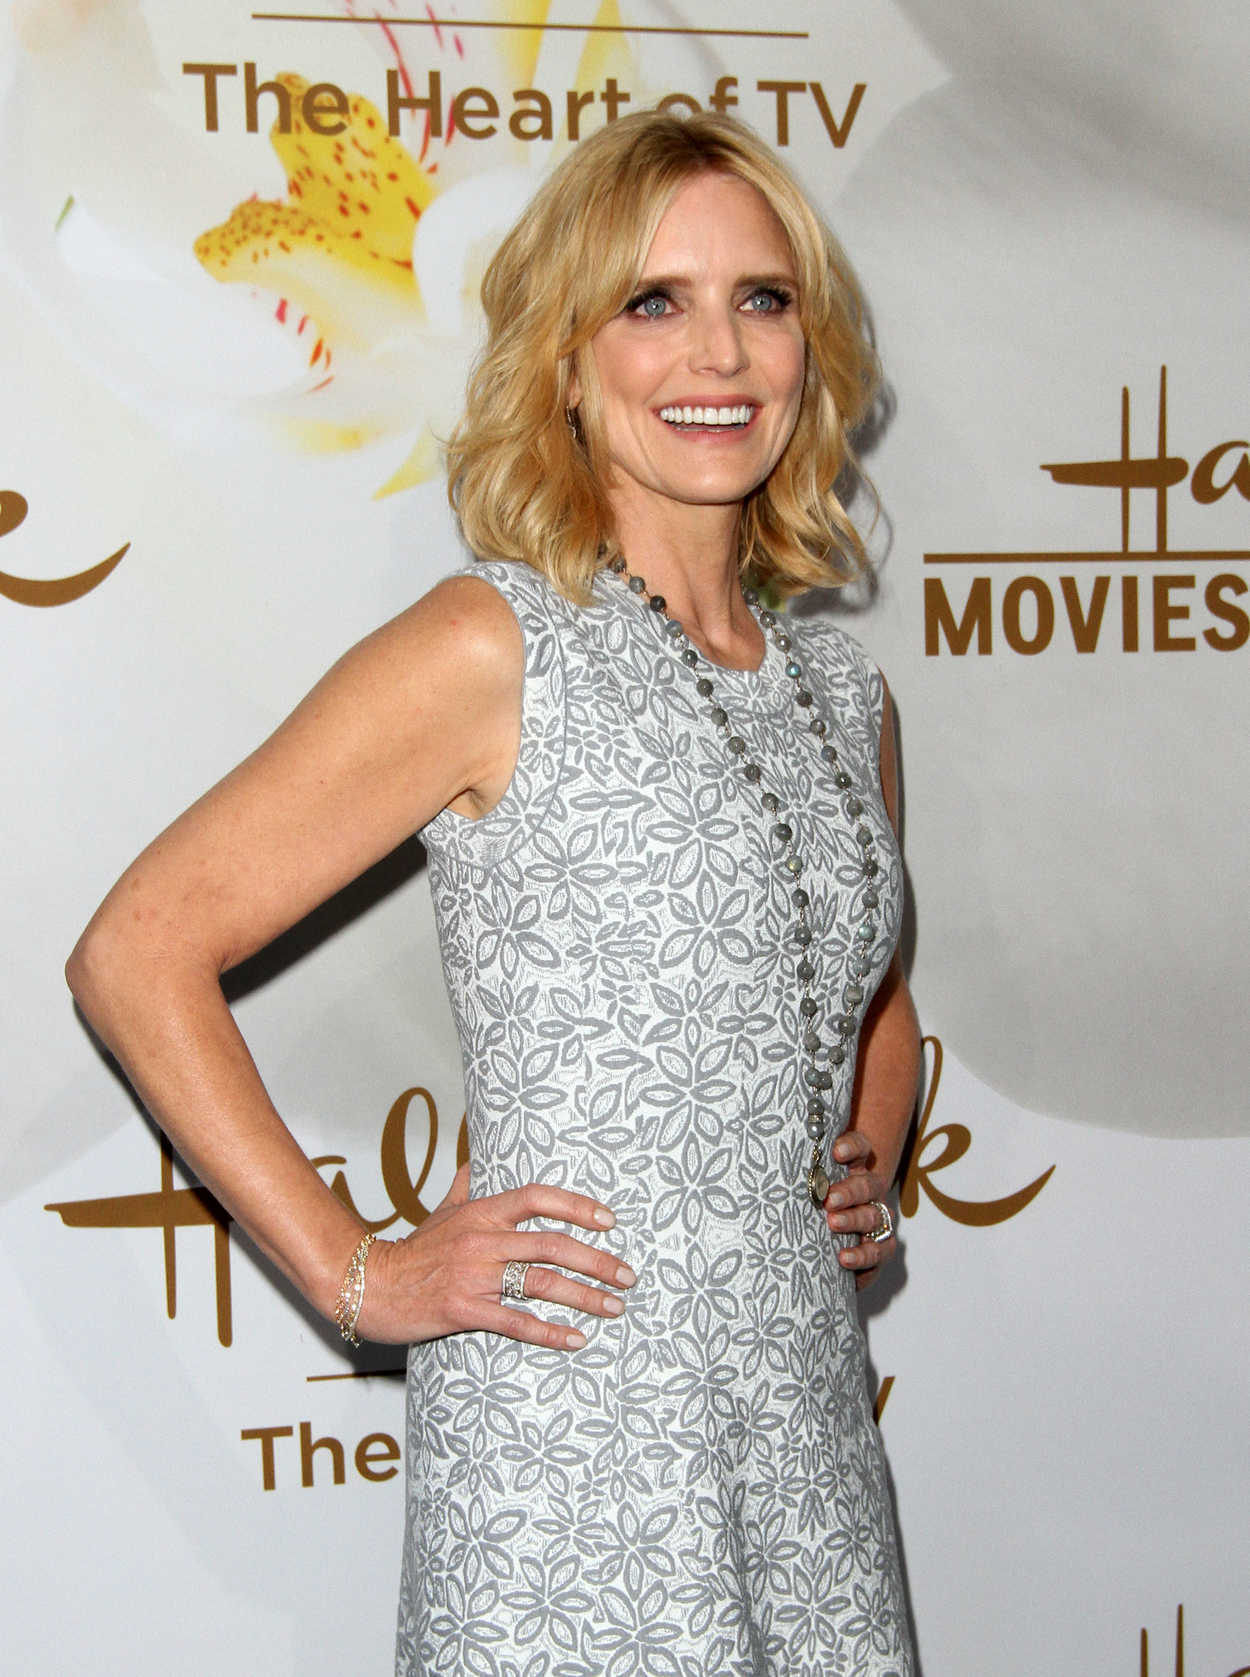 Half men courtney a two thorne-smith and Courtney Thorne